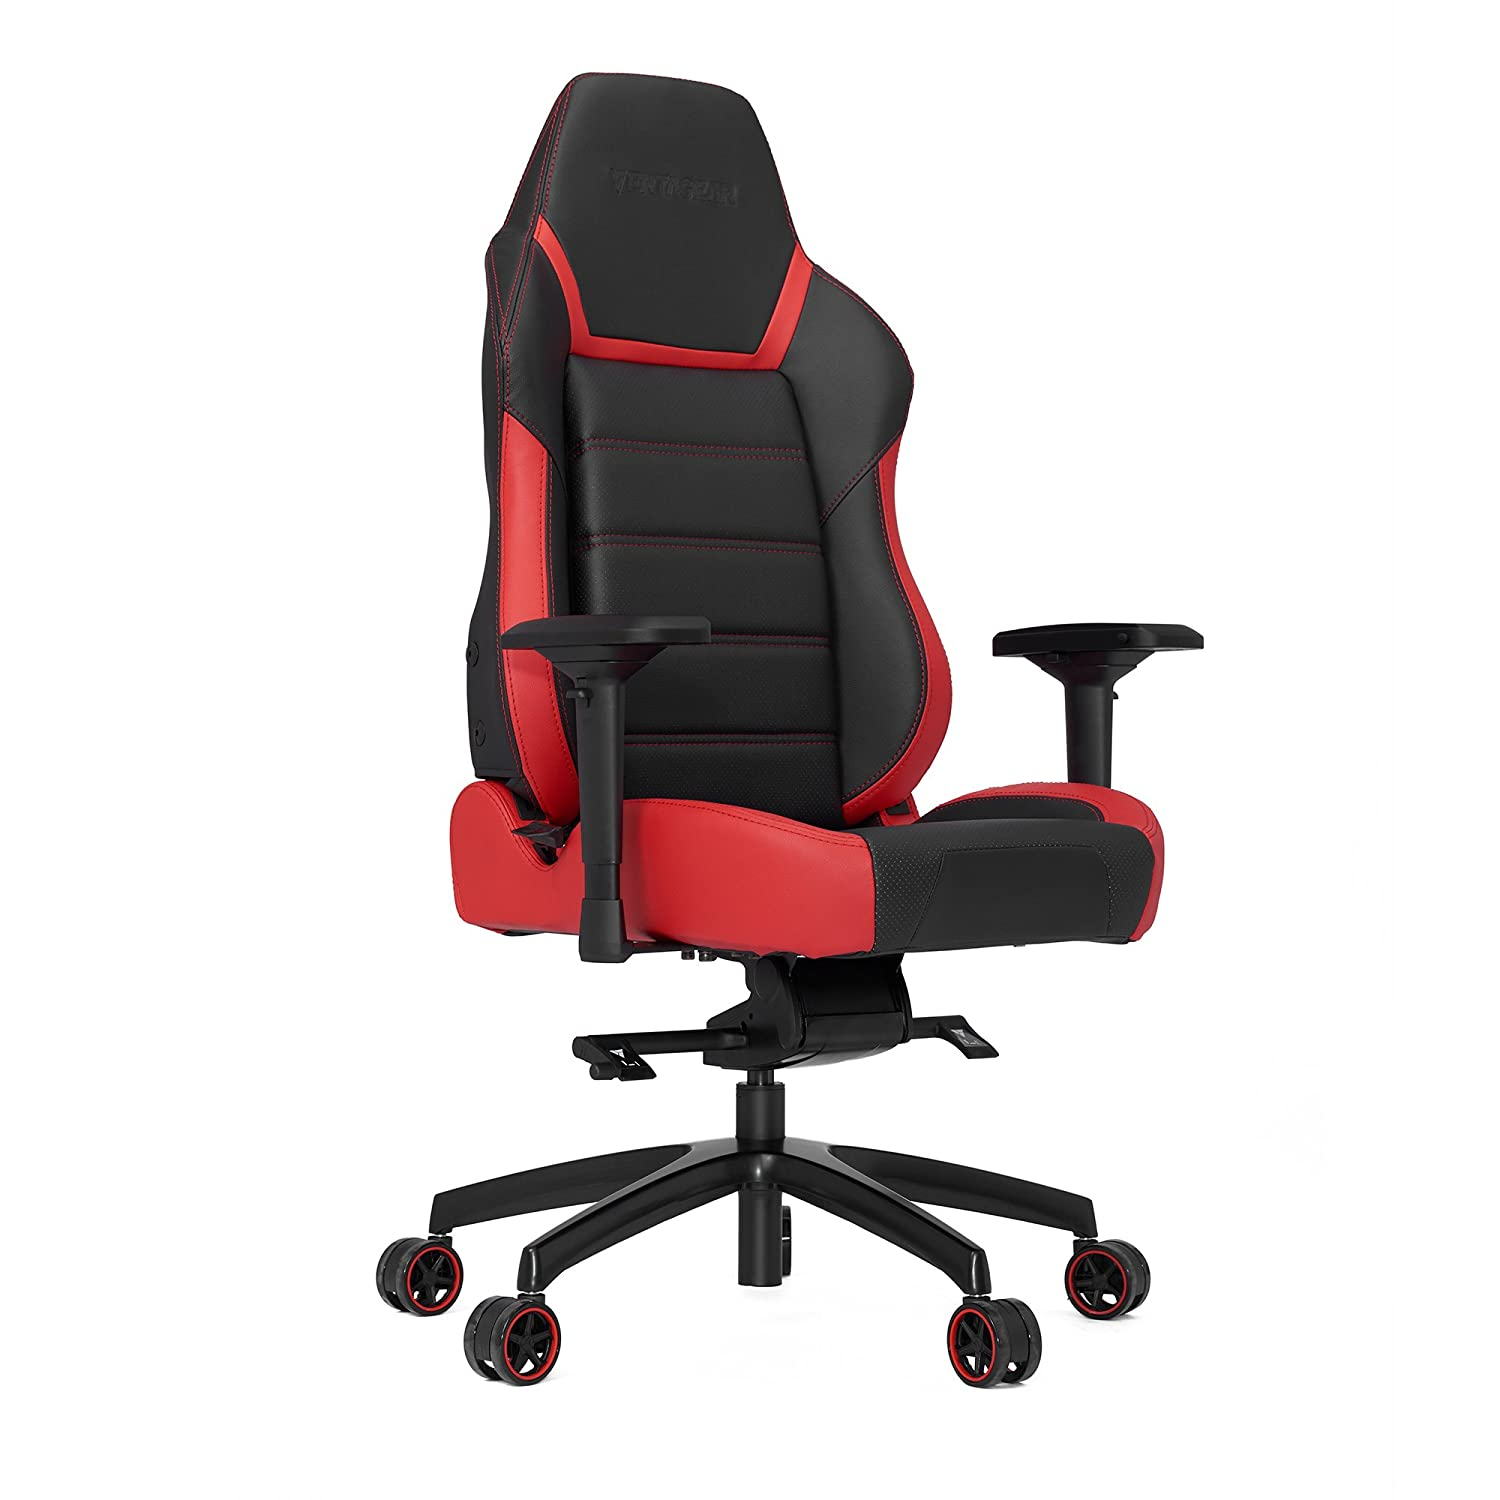 Amazon.com: Vertagear P-Line PL6000 Racing Series Gaming Chair Virtus Pro Edition: Kitchen & Dining